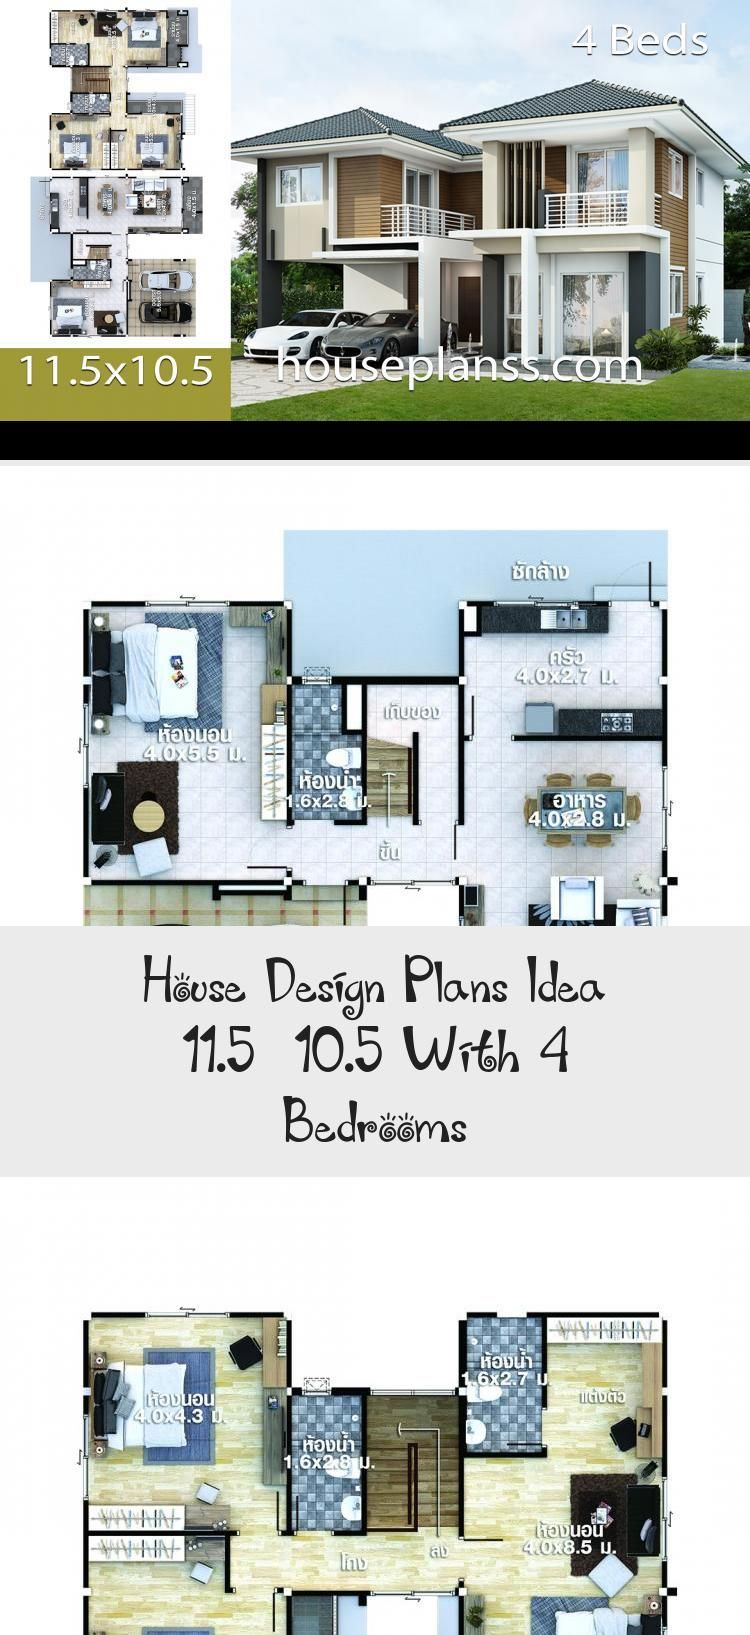 House Design Plans Idea 11 5x10 5 With 4 Bedrooms Home Ideassearch Floorplans4bedroomcolonial Floorplan In 2020 Home Design Plans House Design Floor Plan 4 Bedroom